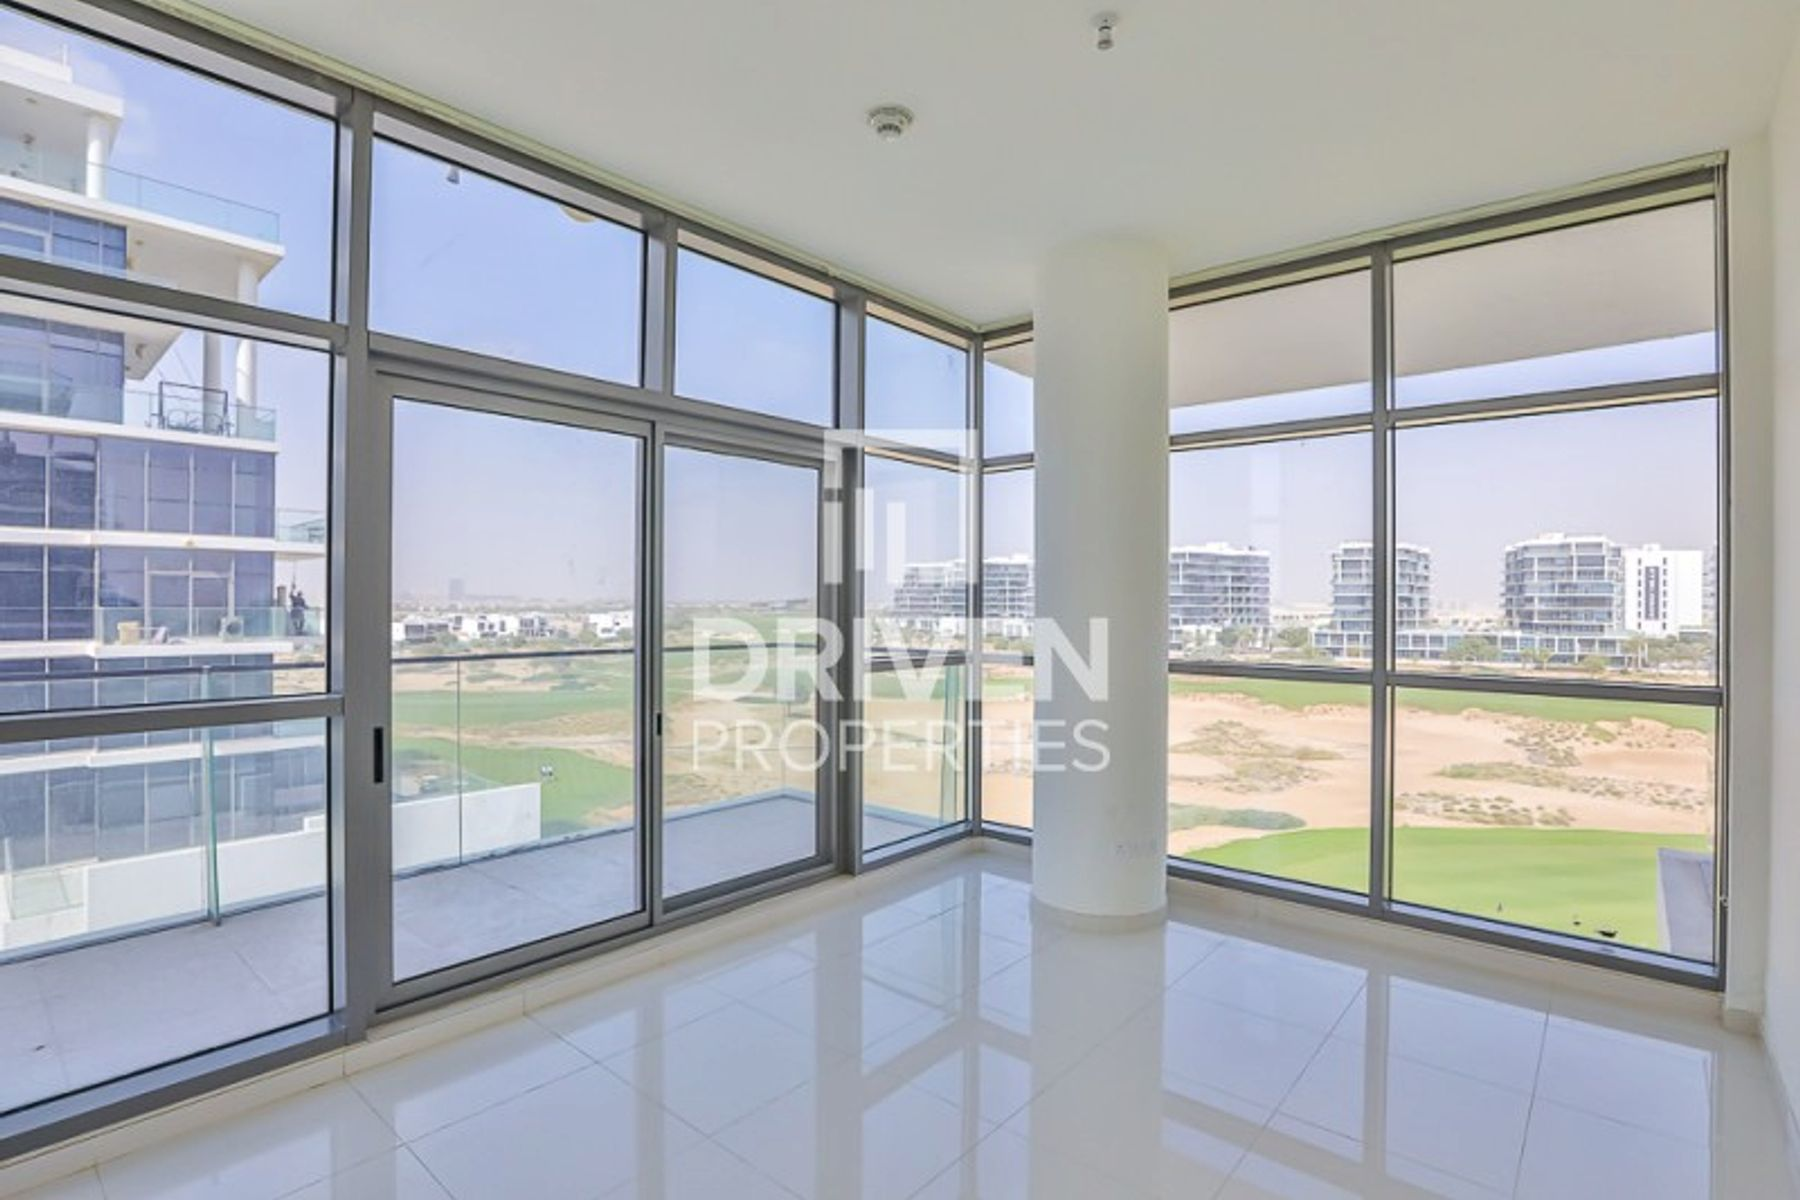 Apartment for Rent in Golf Promenade 4A - DAMAC Hills (Akoya by DAMAC)